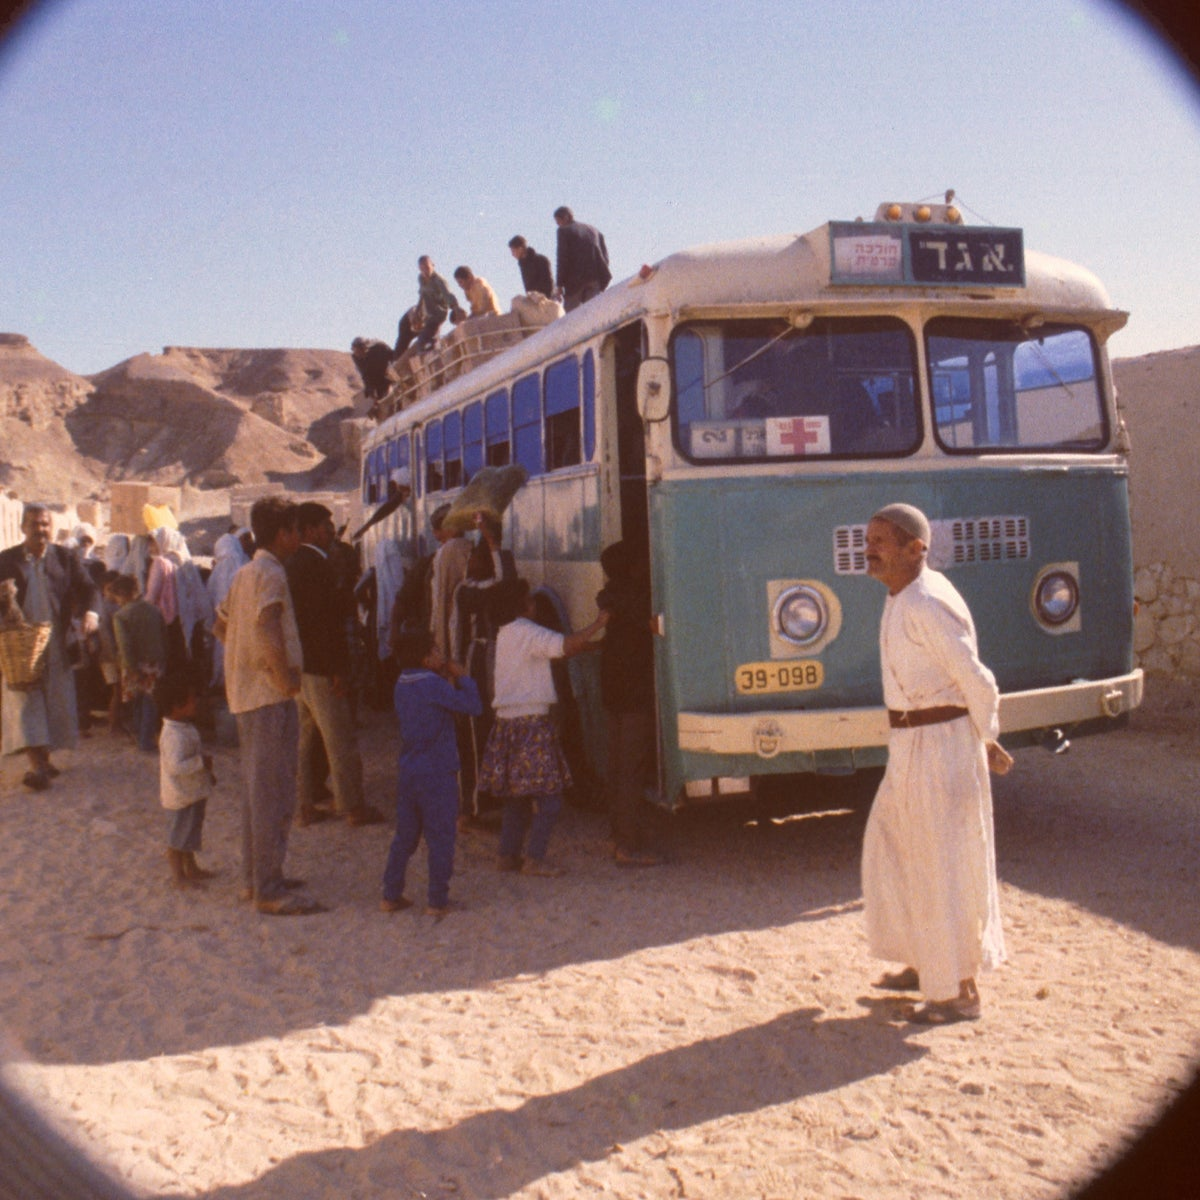 The Red Cross visit the Abu Zenima camp in October, 1971.